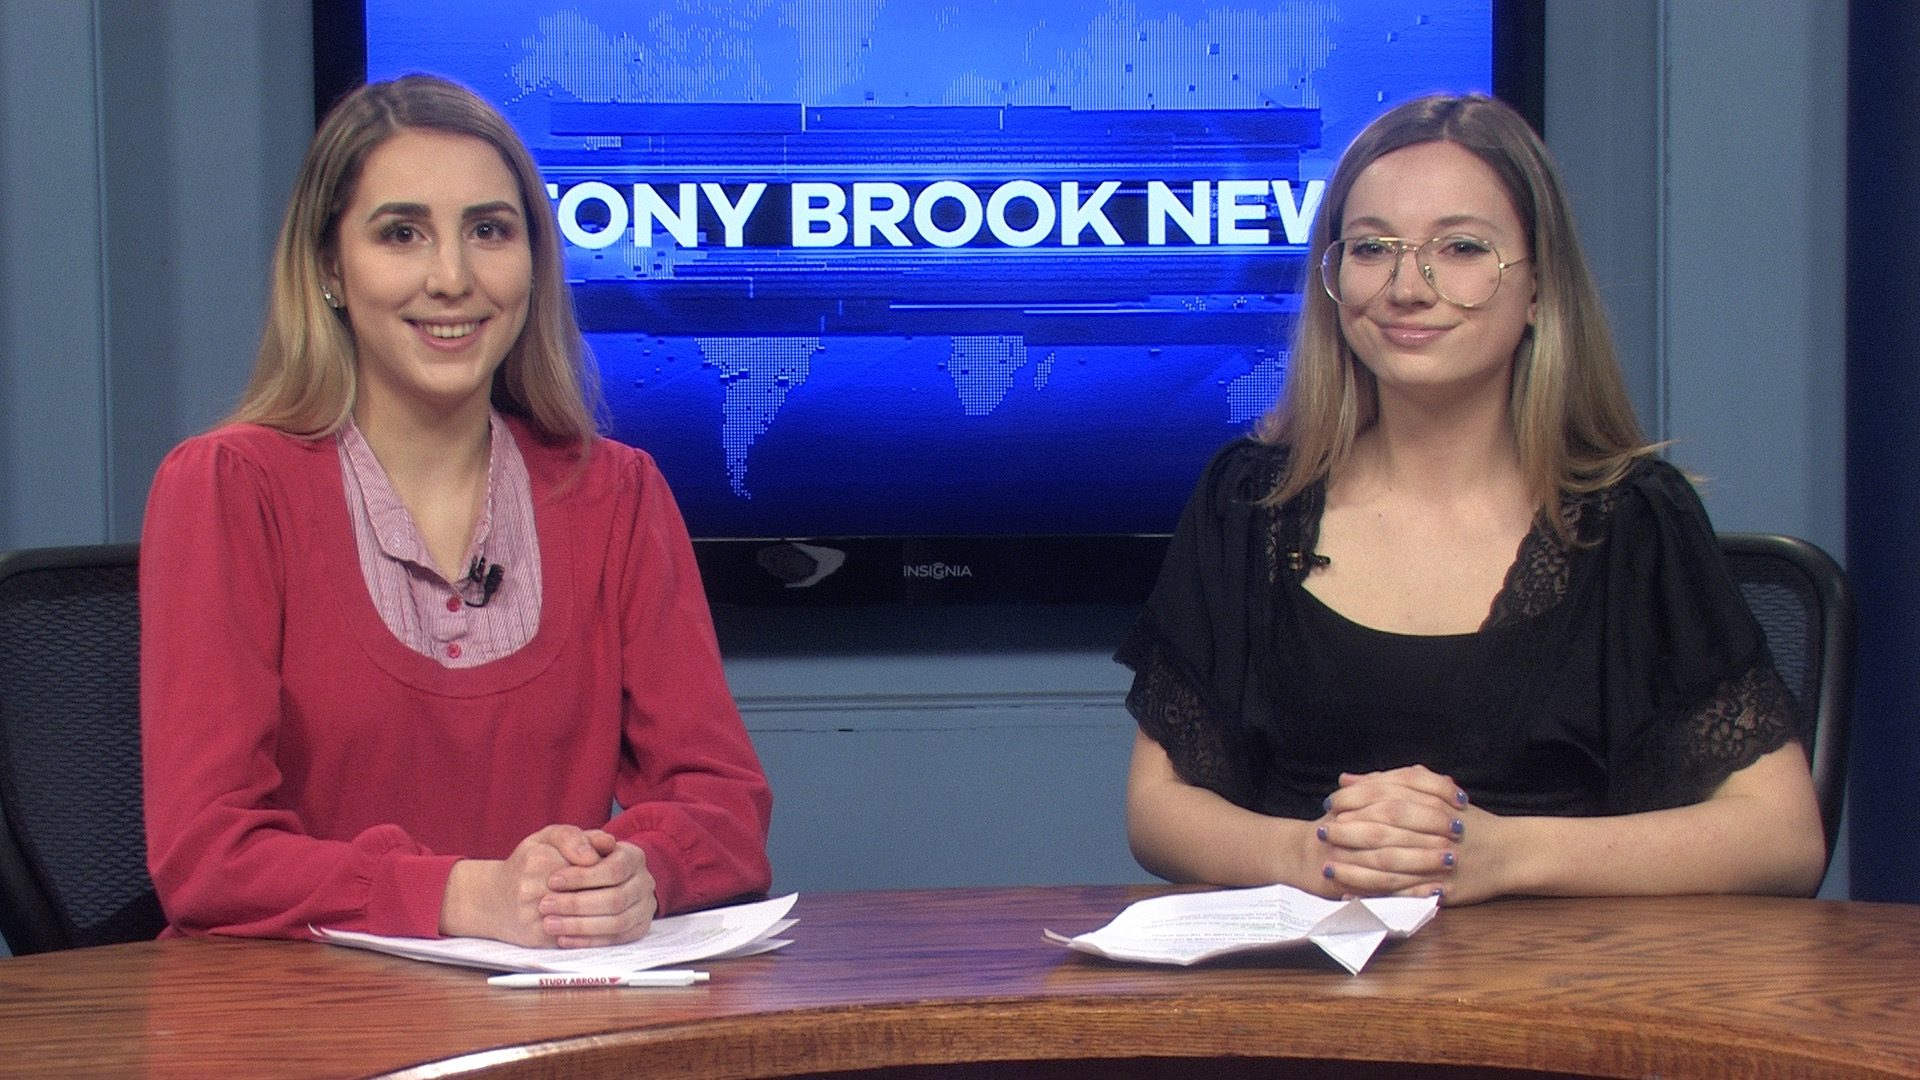 Stony Brook Newsbreak – February 27, 2020